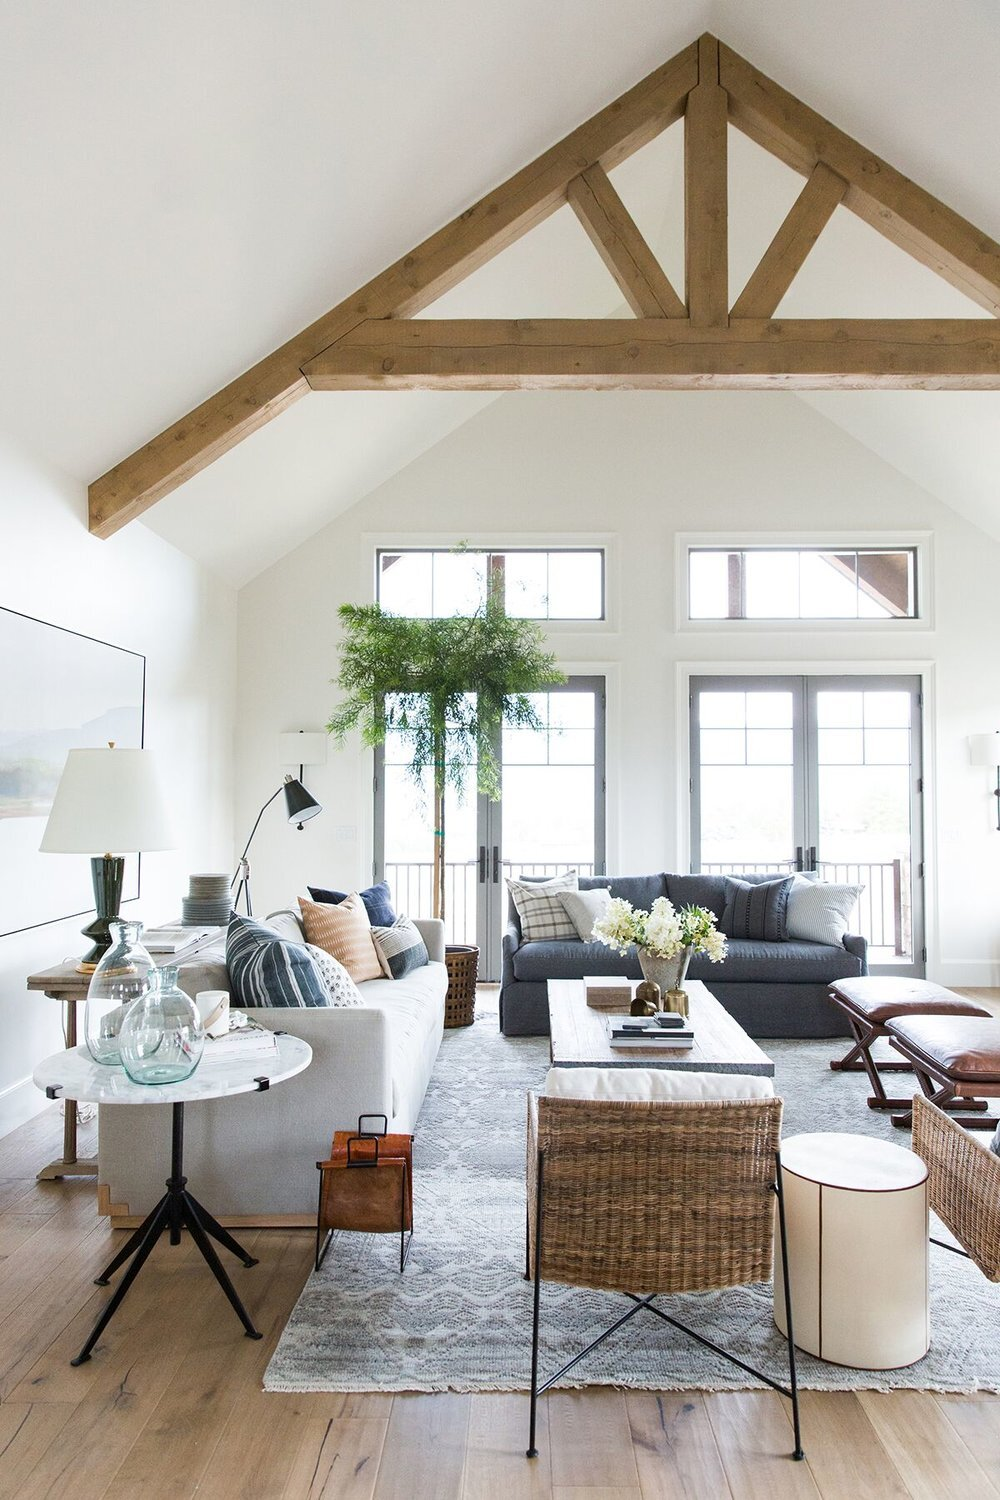 The Building Blocks of a Great Room